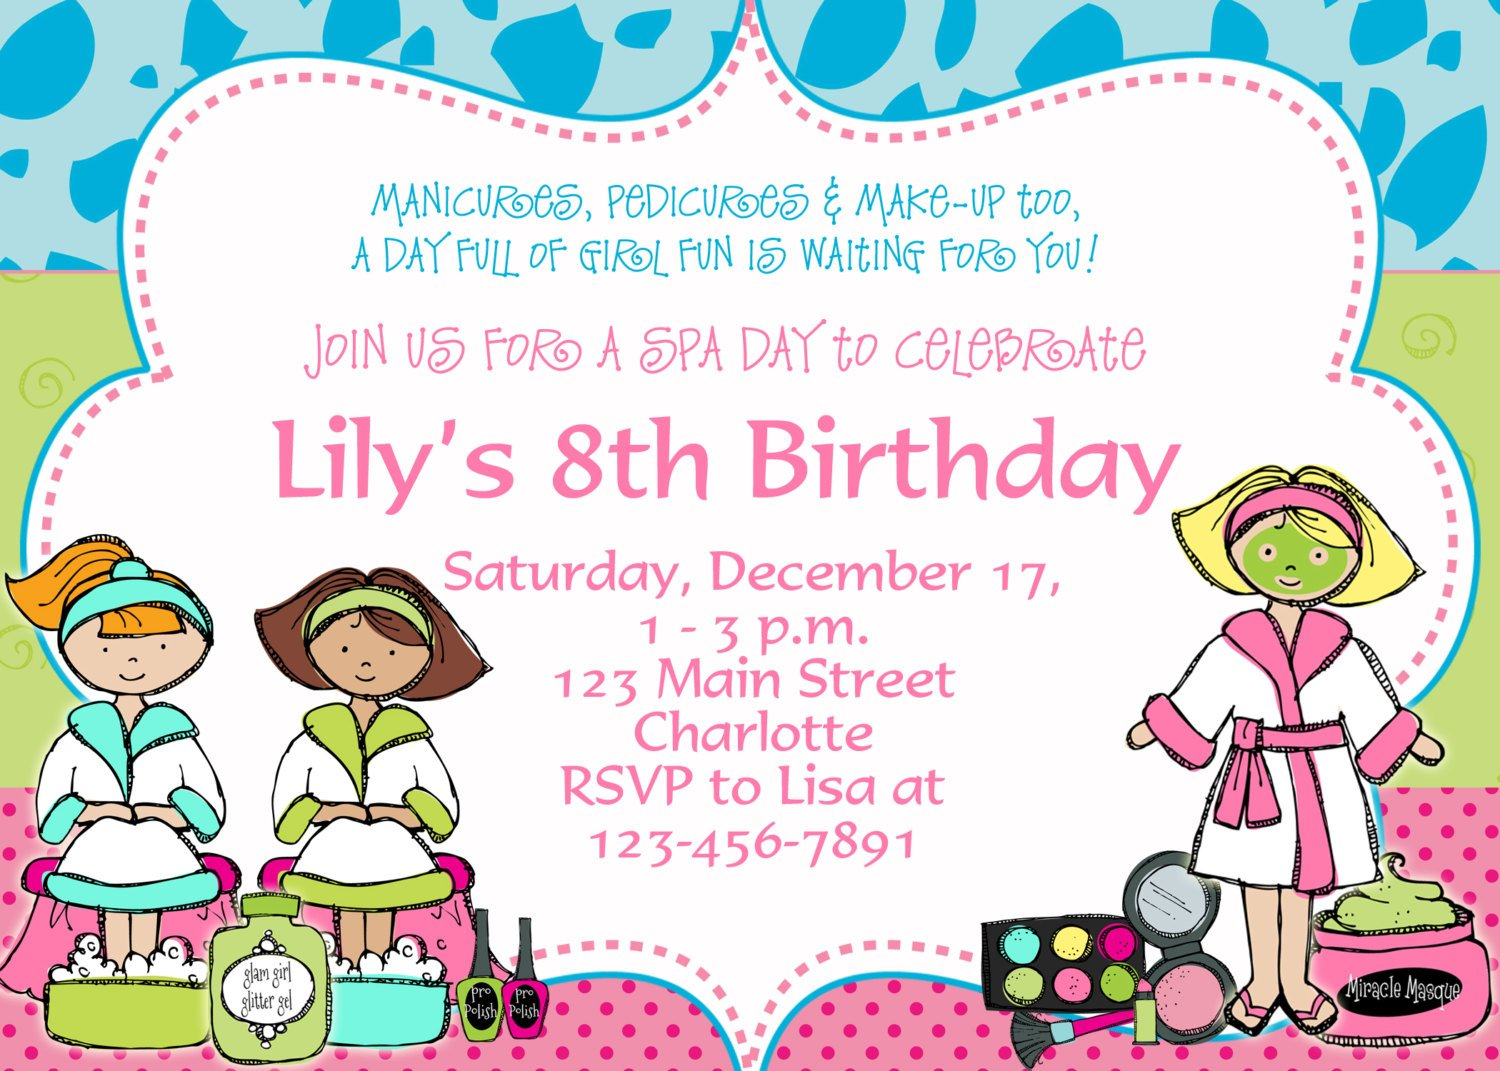 Free Birthday Party Invitation Templates – Invitations Birthday Party Free Printable